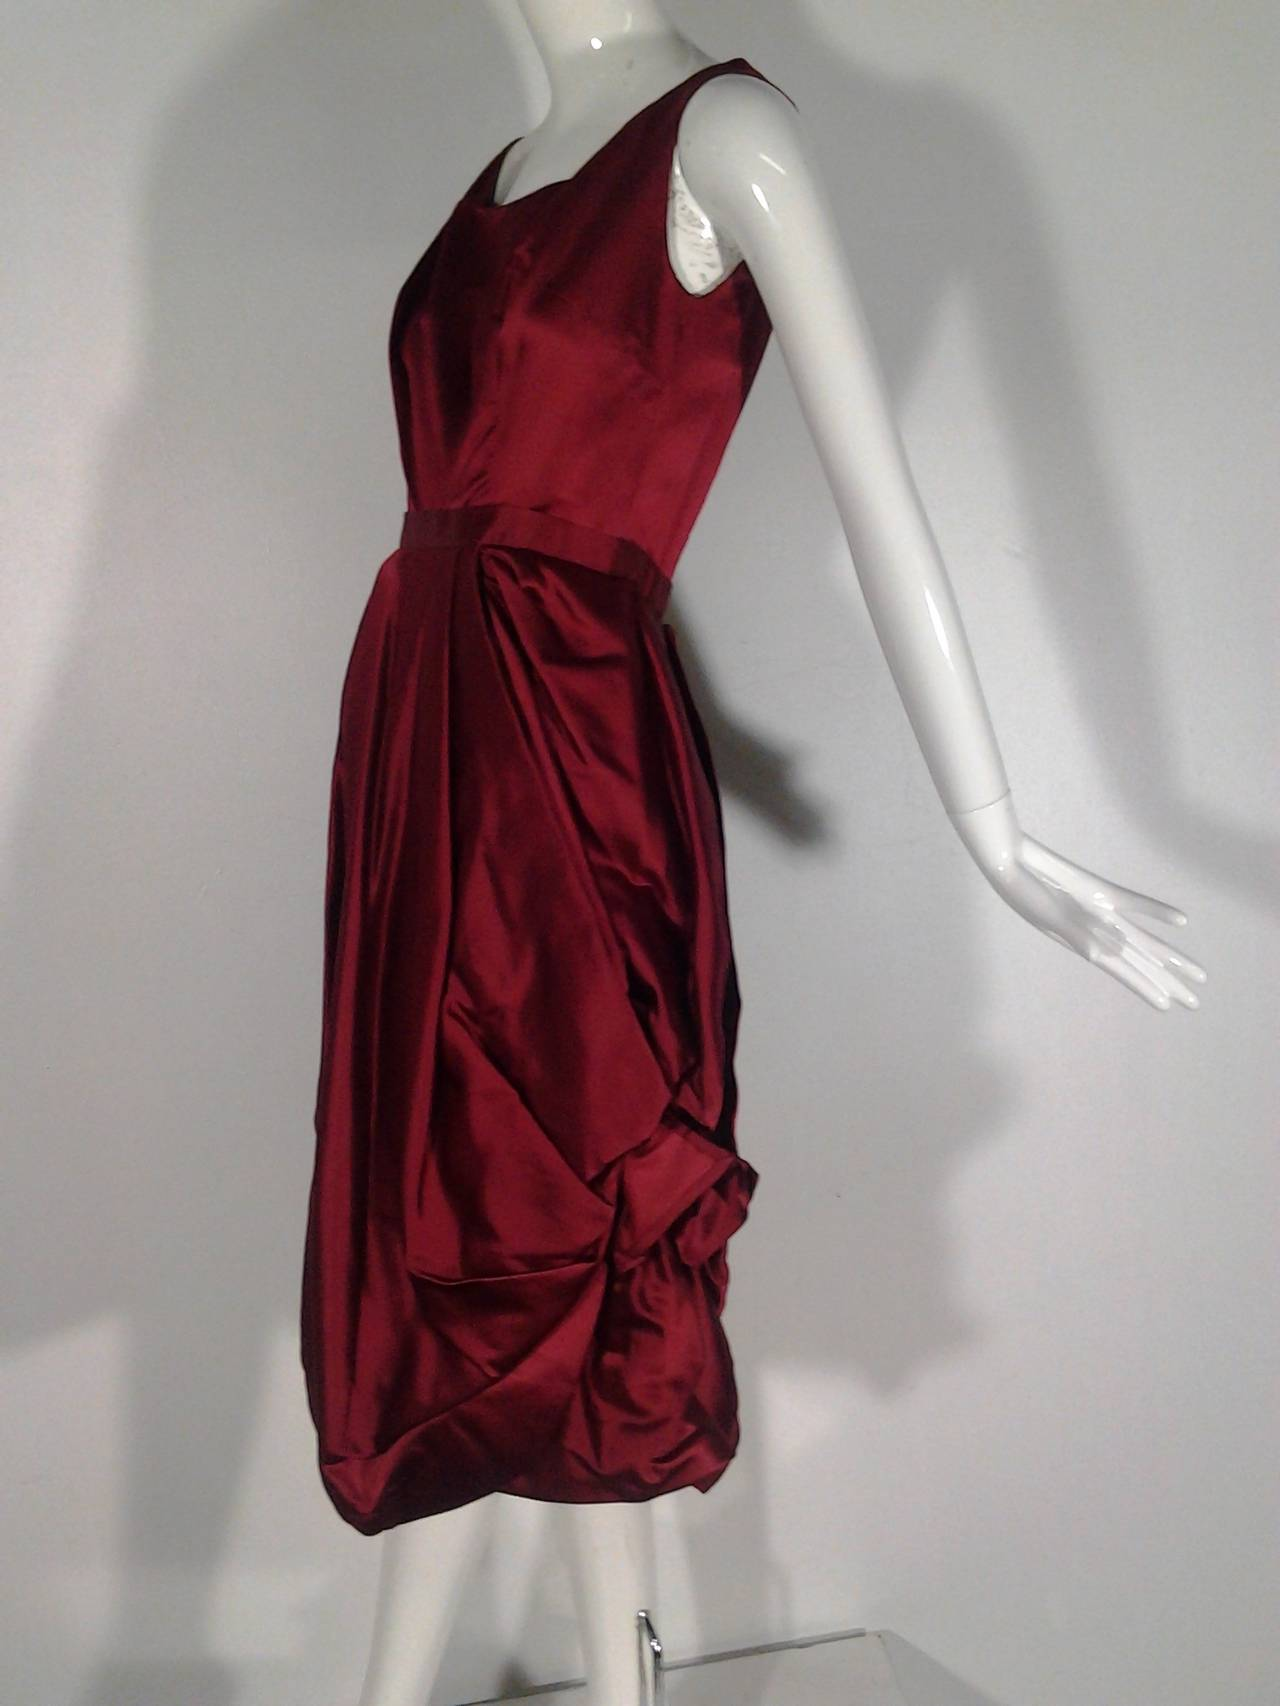 1950s Nan Duskin Red Cocktail Dress Featuring Floral Inspired Draped Skirt 3